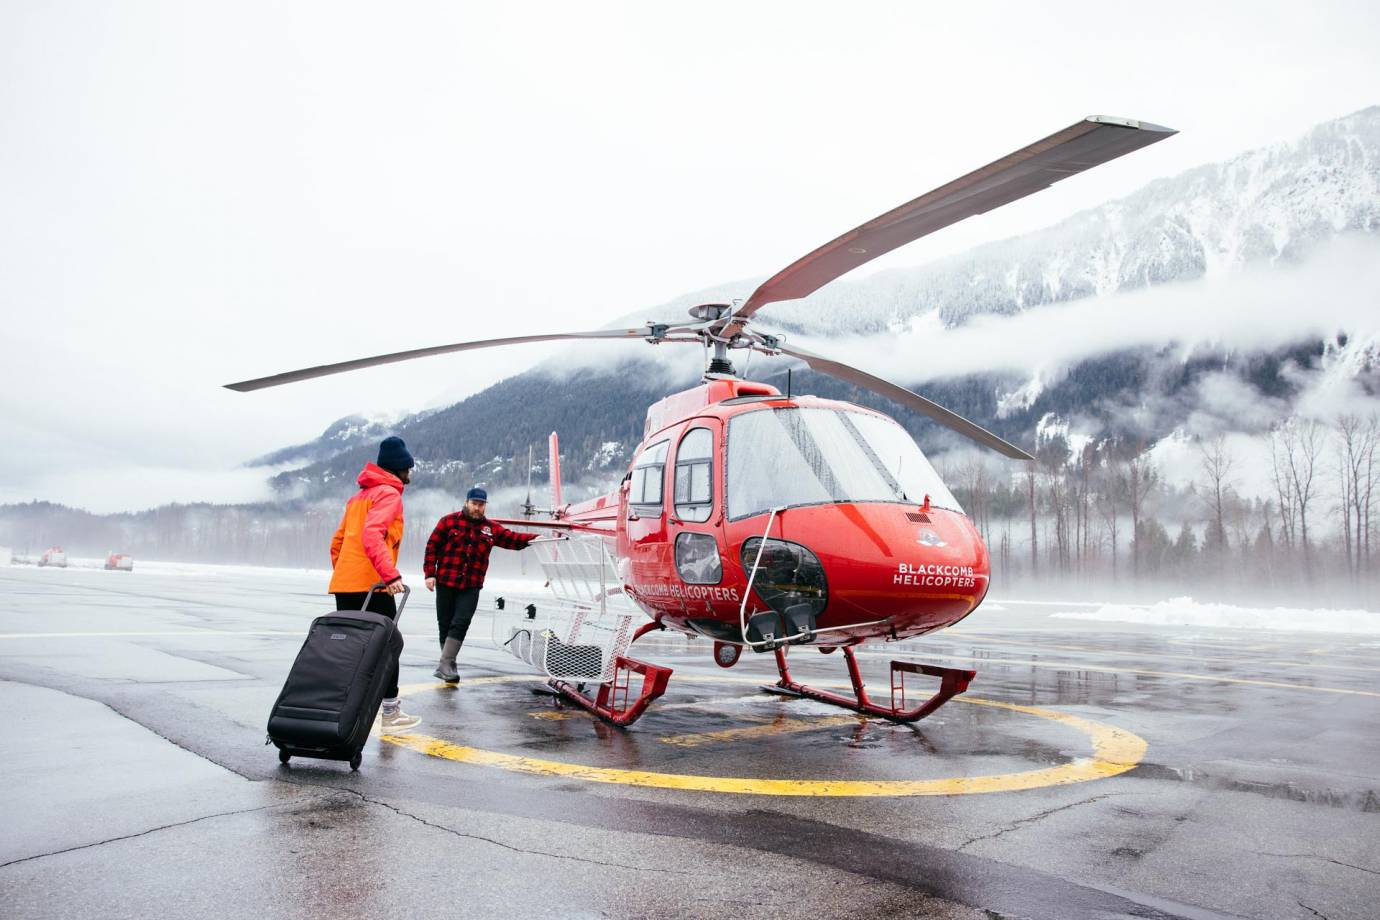 tatum monod walks to helicopter for adventure